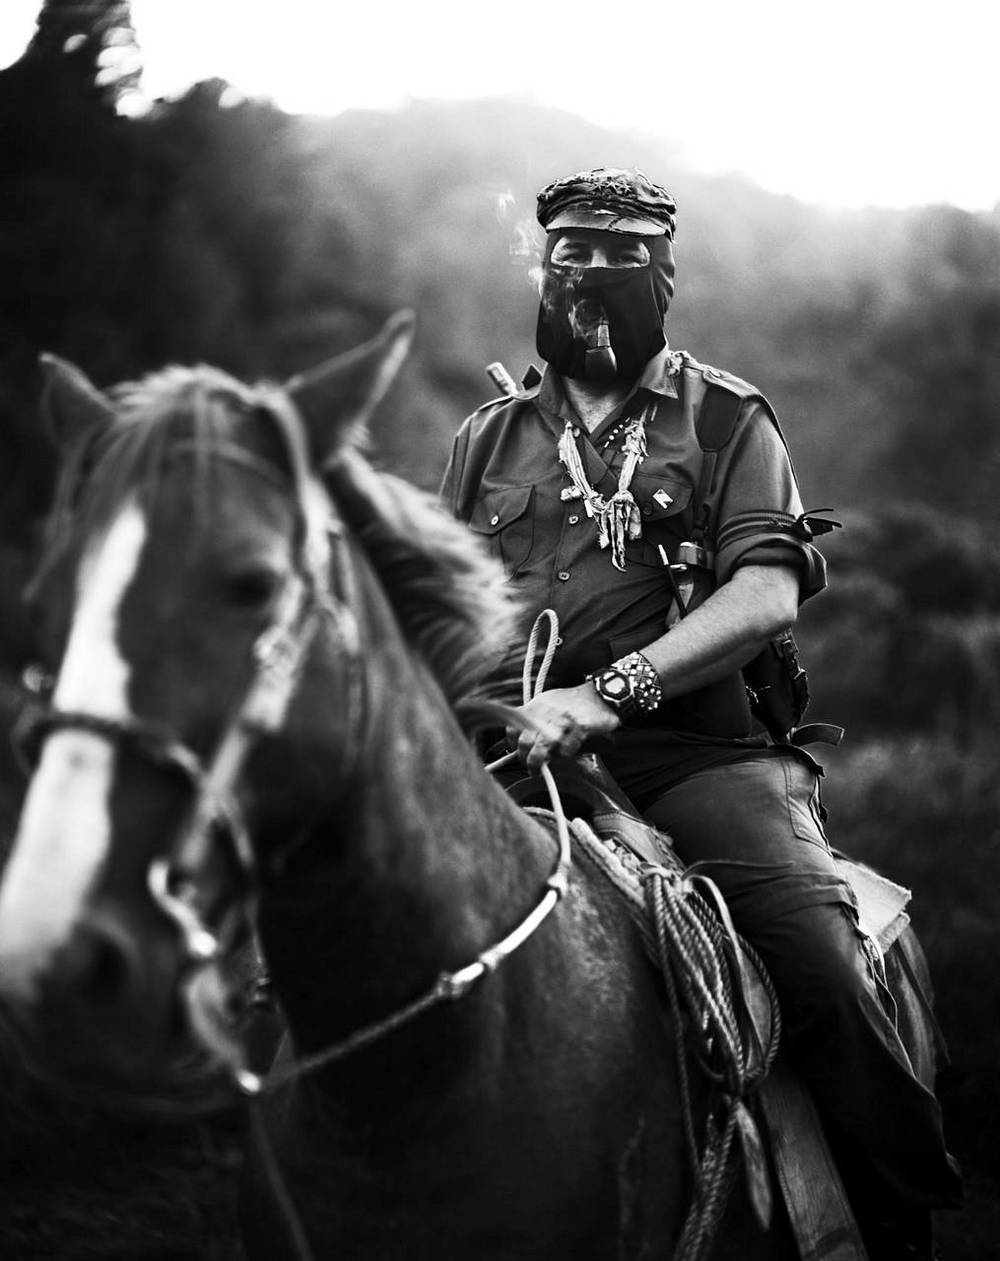 Subcomandante Marcos of the EZLN